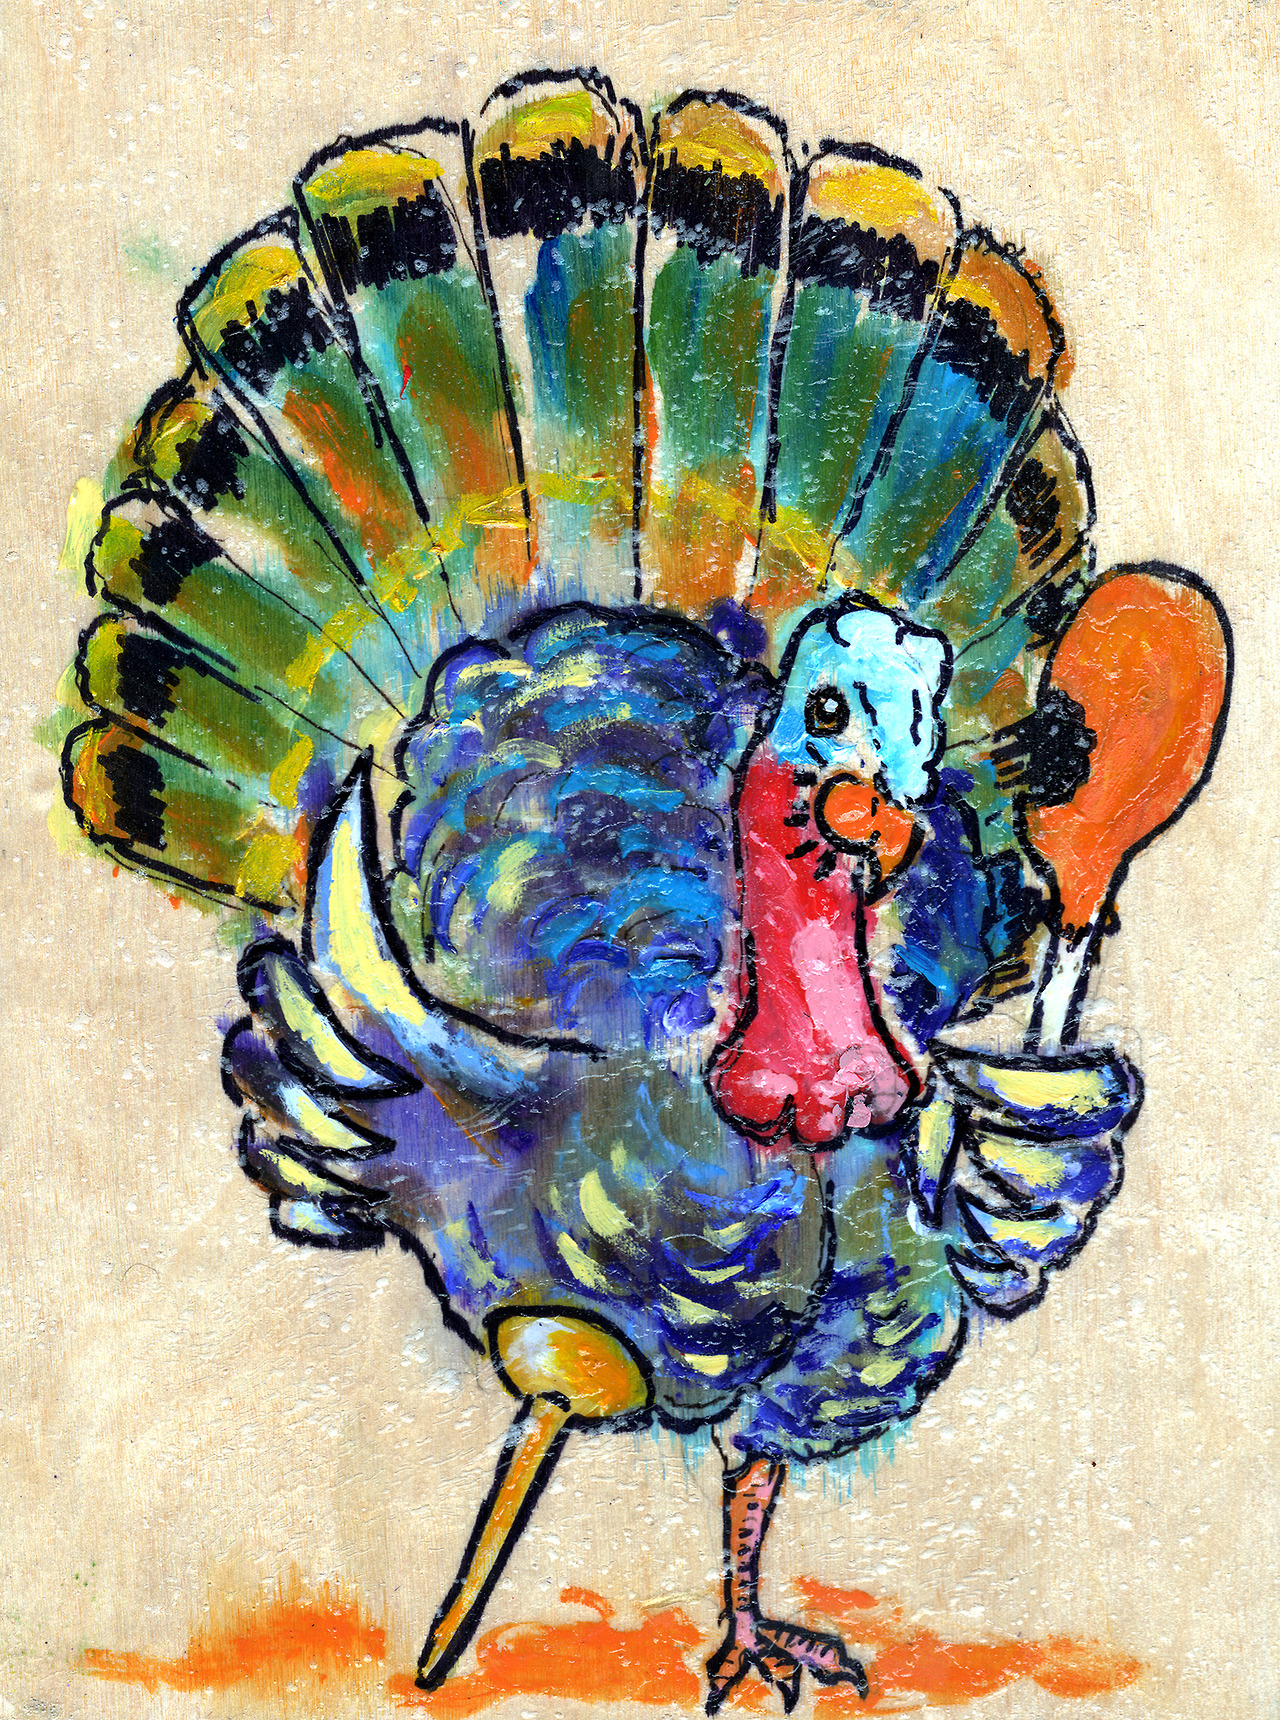 11/28/13 -  Gobbledygood.    Happy thanksgiving, everyone! Eat the bird before it eats itself.   Only about 60 hours left on my kickstarter! - http://www.kickstarter.com/projects/taylorwinder/the-art-book-of-the-year